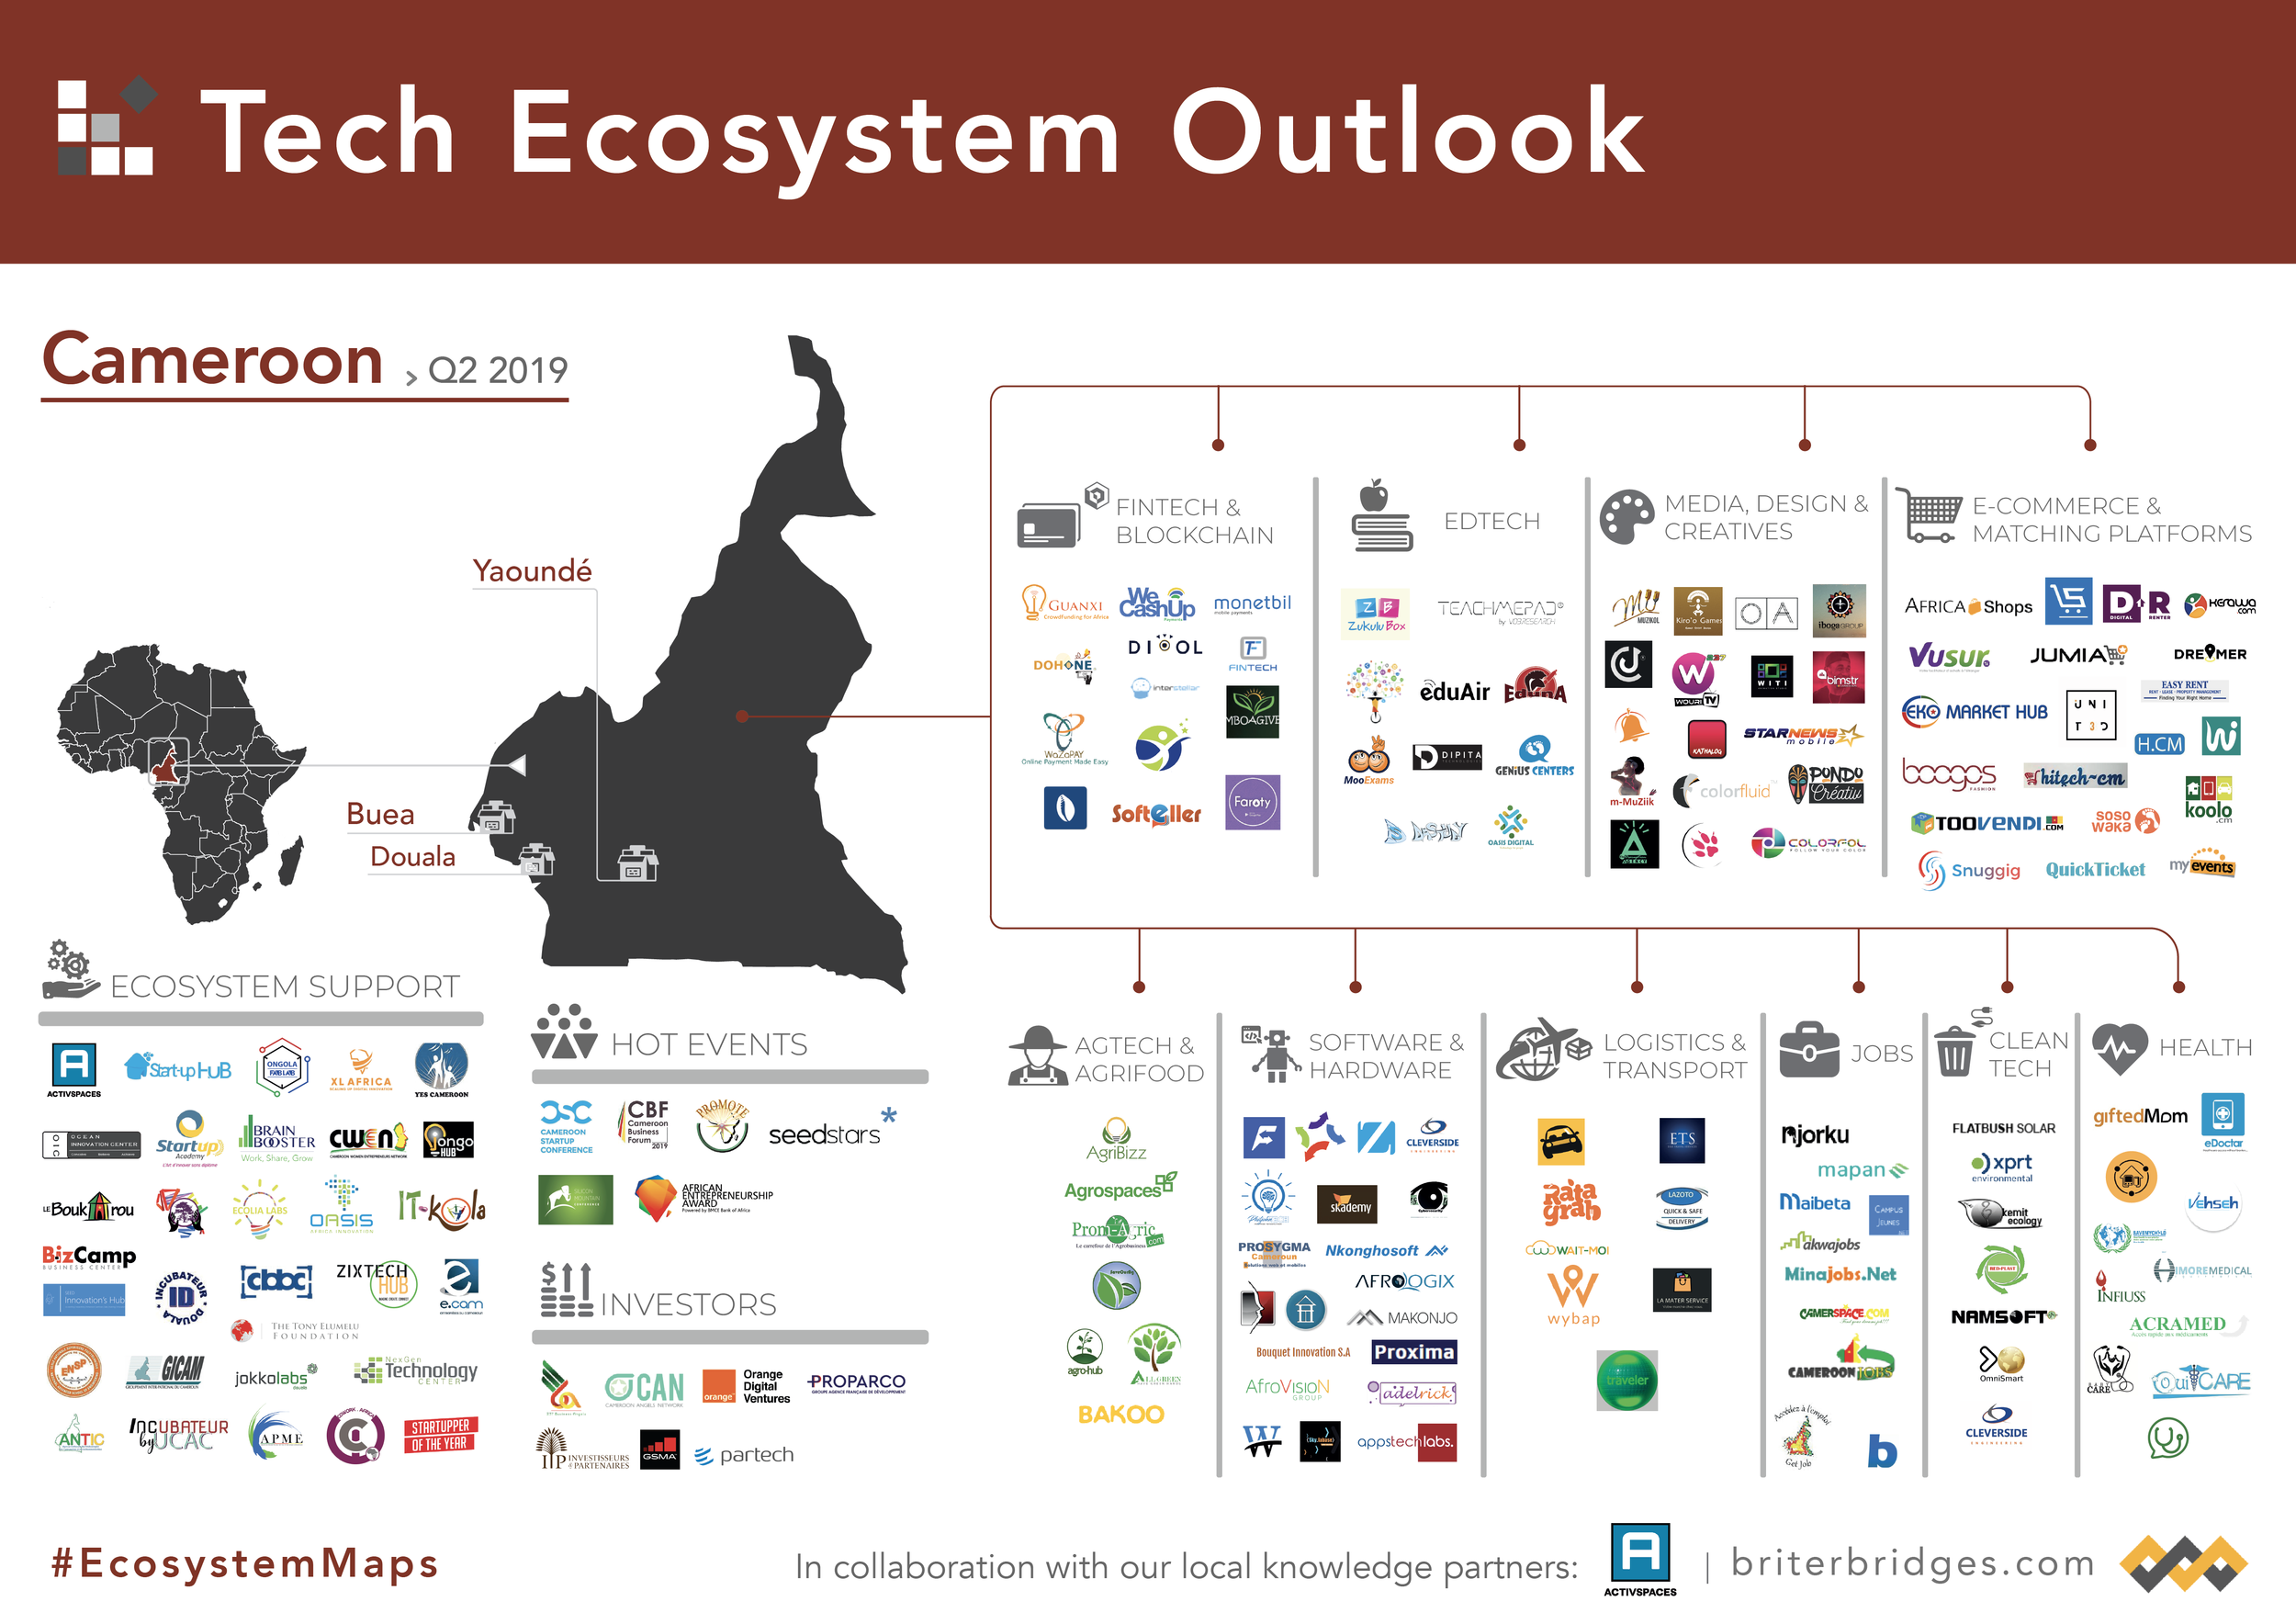 Cameroon's Tech Ecosystem Map